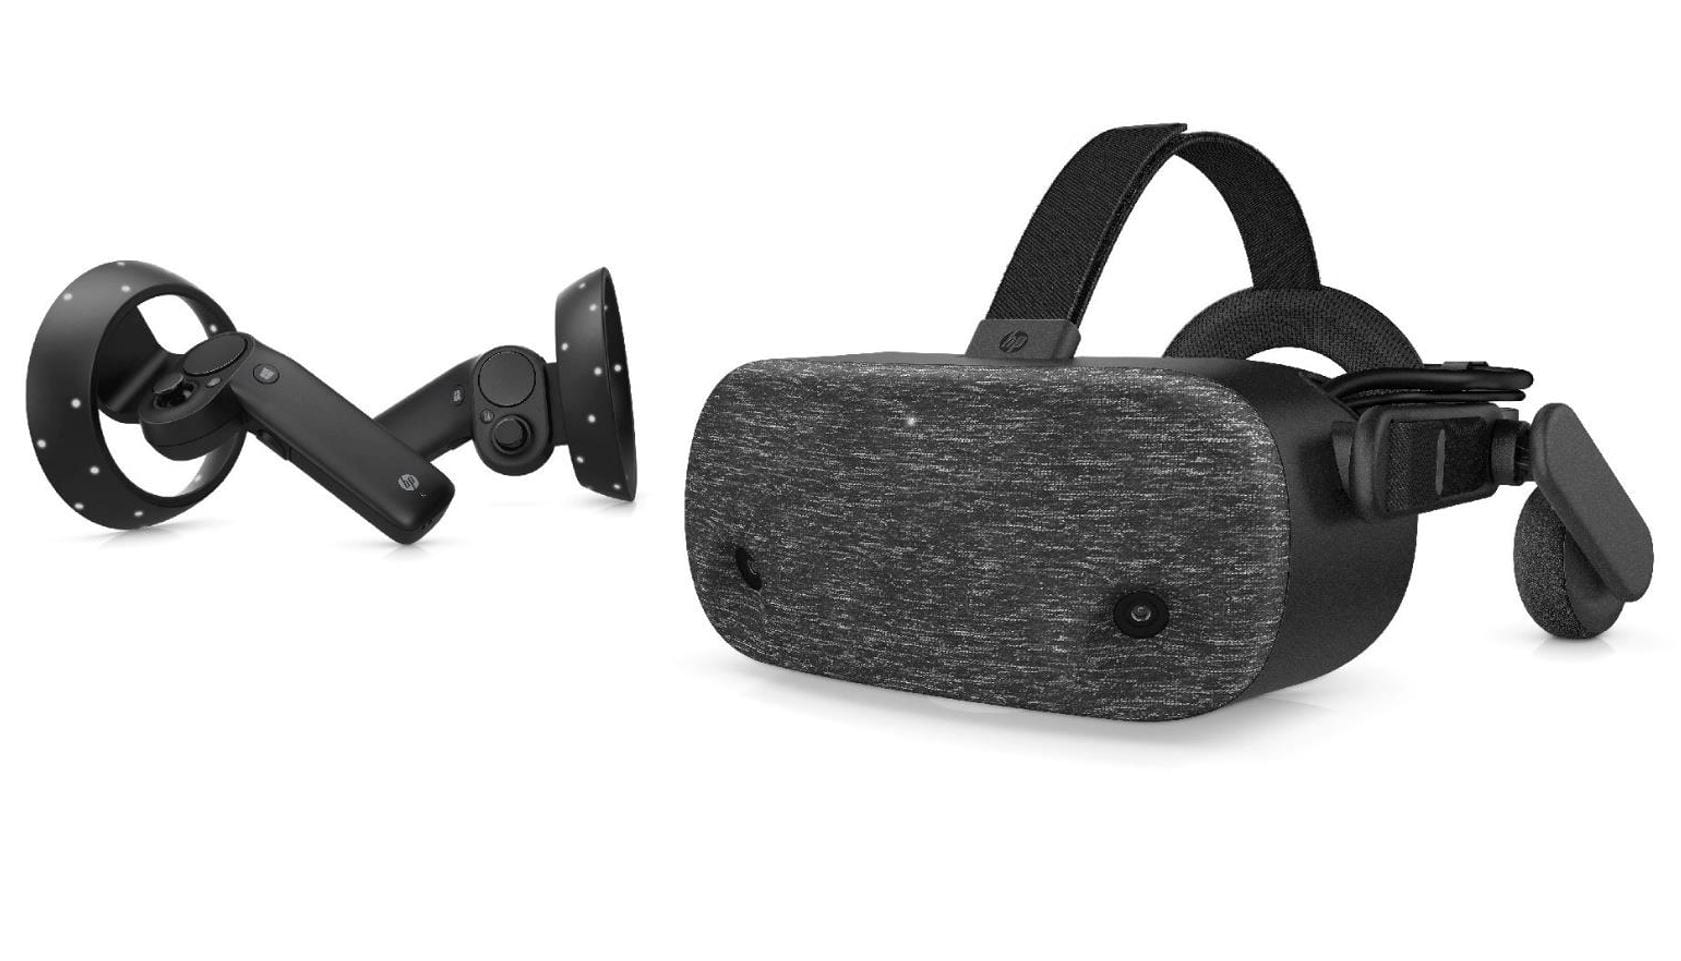 HP Launches Reverb, a New VR Headset for Windows Mixed Reality